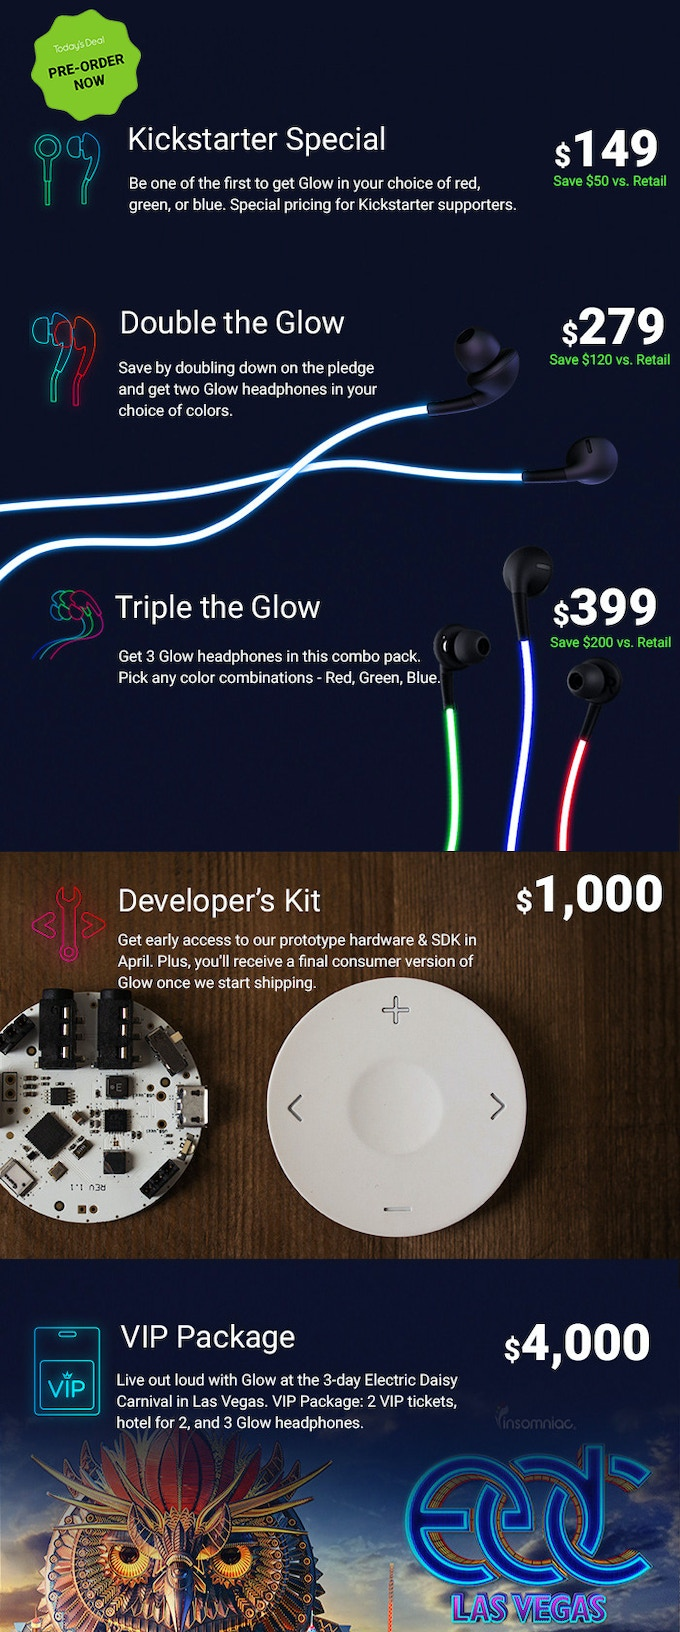 Glow The First Smart Headphones With Laser Light By Llc How To Wire A Broken Headphone Jack Wiring Earbud Color Music Has Always Been Powerful Form Of Expression And Puts You Center Stage These Earbuds Pack Specially Designed Wires That Diffuse From